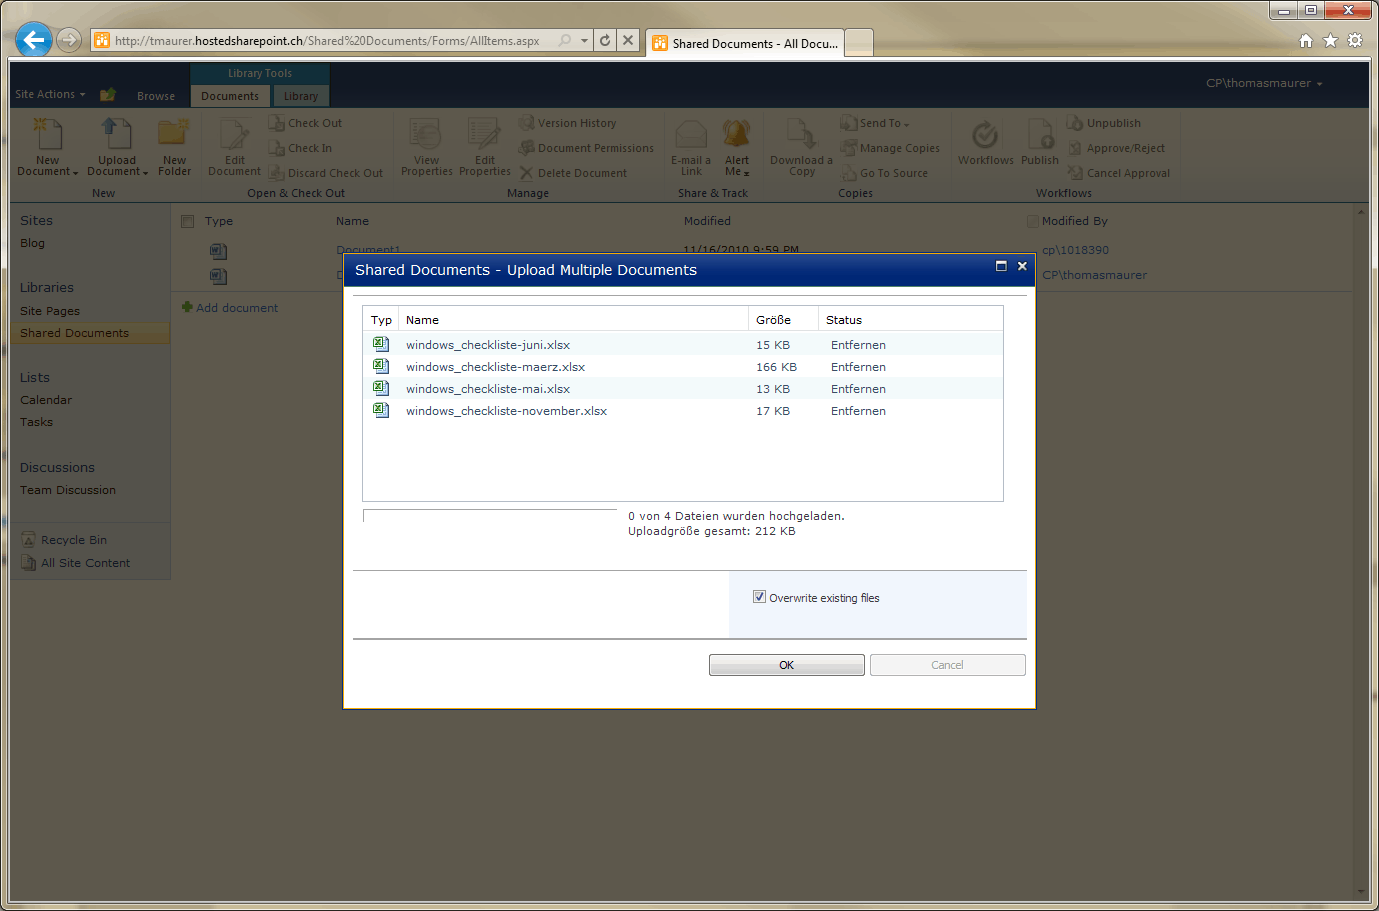 populating documents in a document library indiana With documents upload portal